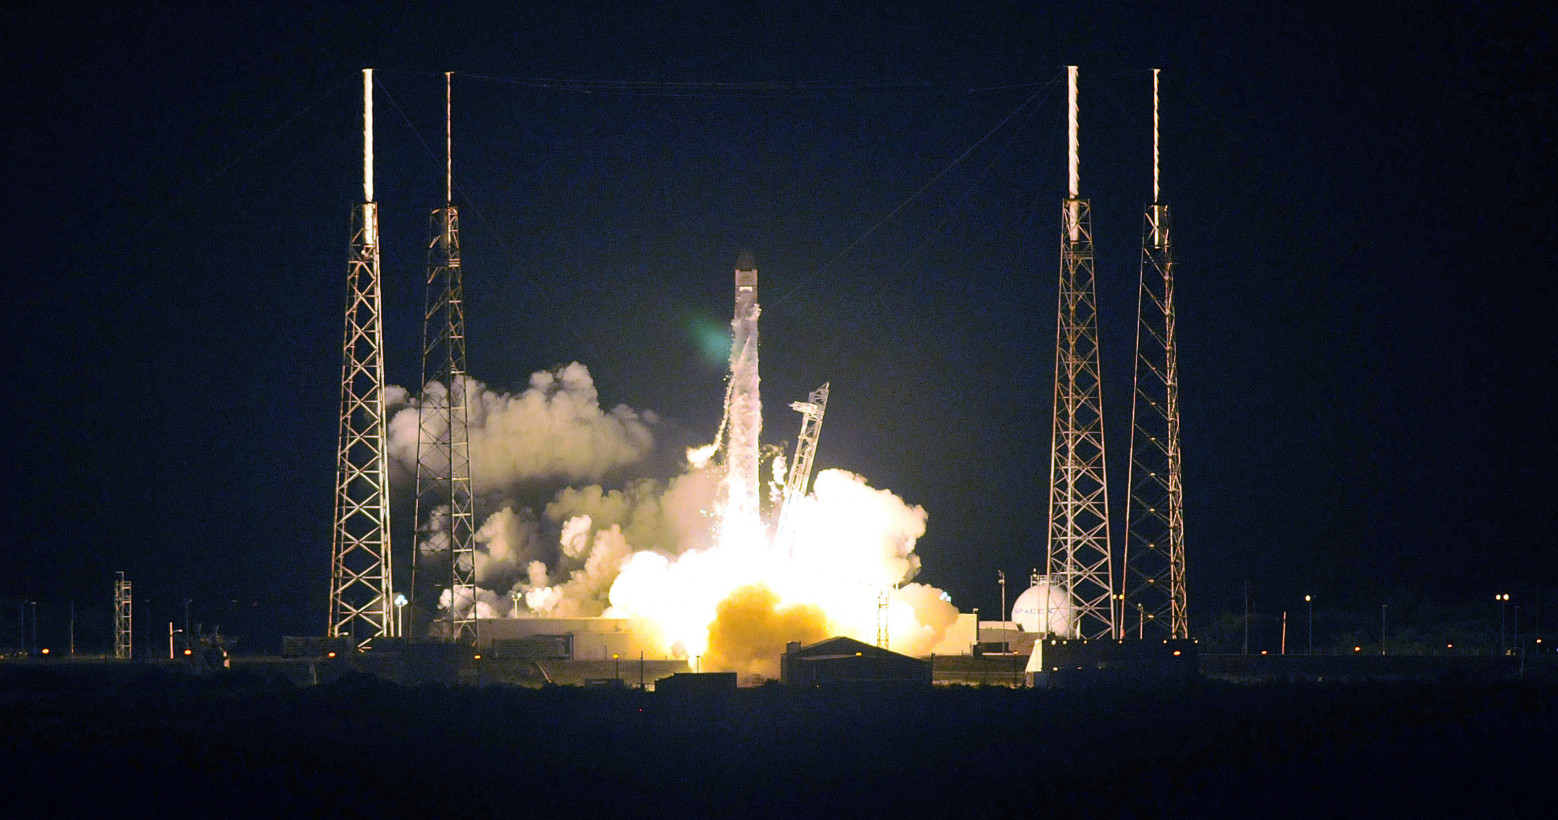 SpaceX is launching its broadband satellites into orbit this week